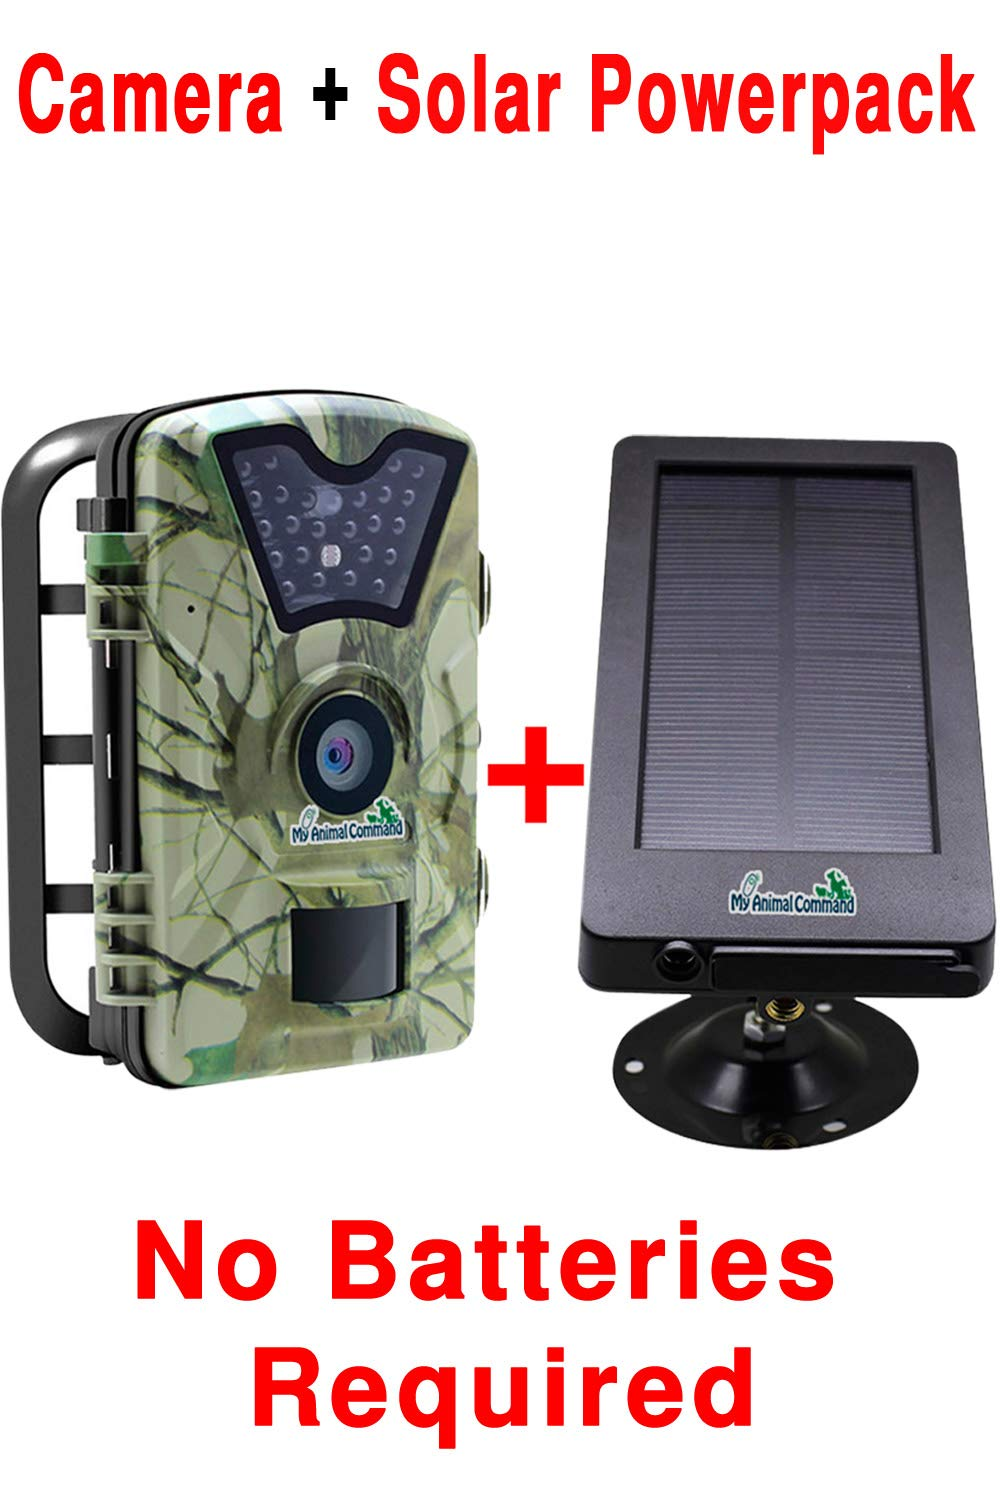 MyCommand Solar Trail Camera 12MP Animal Game Time Lapse Cam with Night Vision Motion Activated, IP66 Waterproof 1080p Spy Outdoor Deer & Wildlife Hunting. (12MP Camera and Solar Power Pack Bundle) by My Animal Command